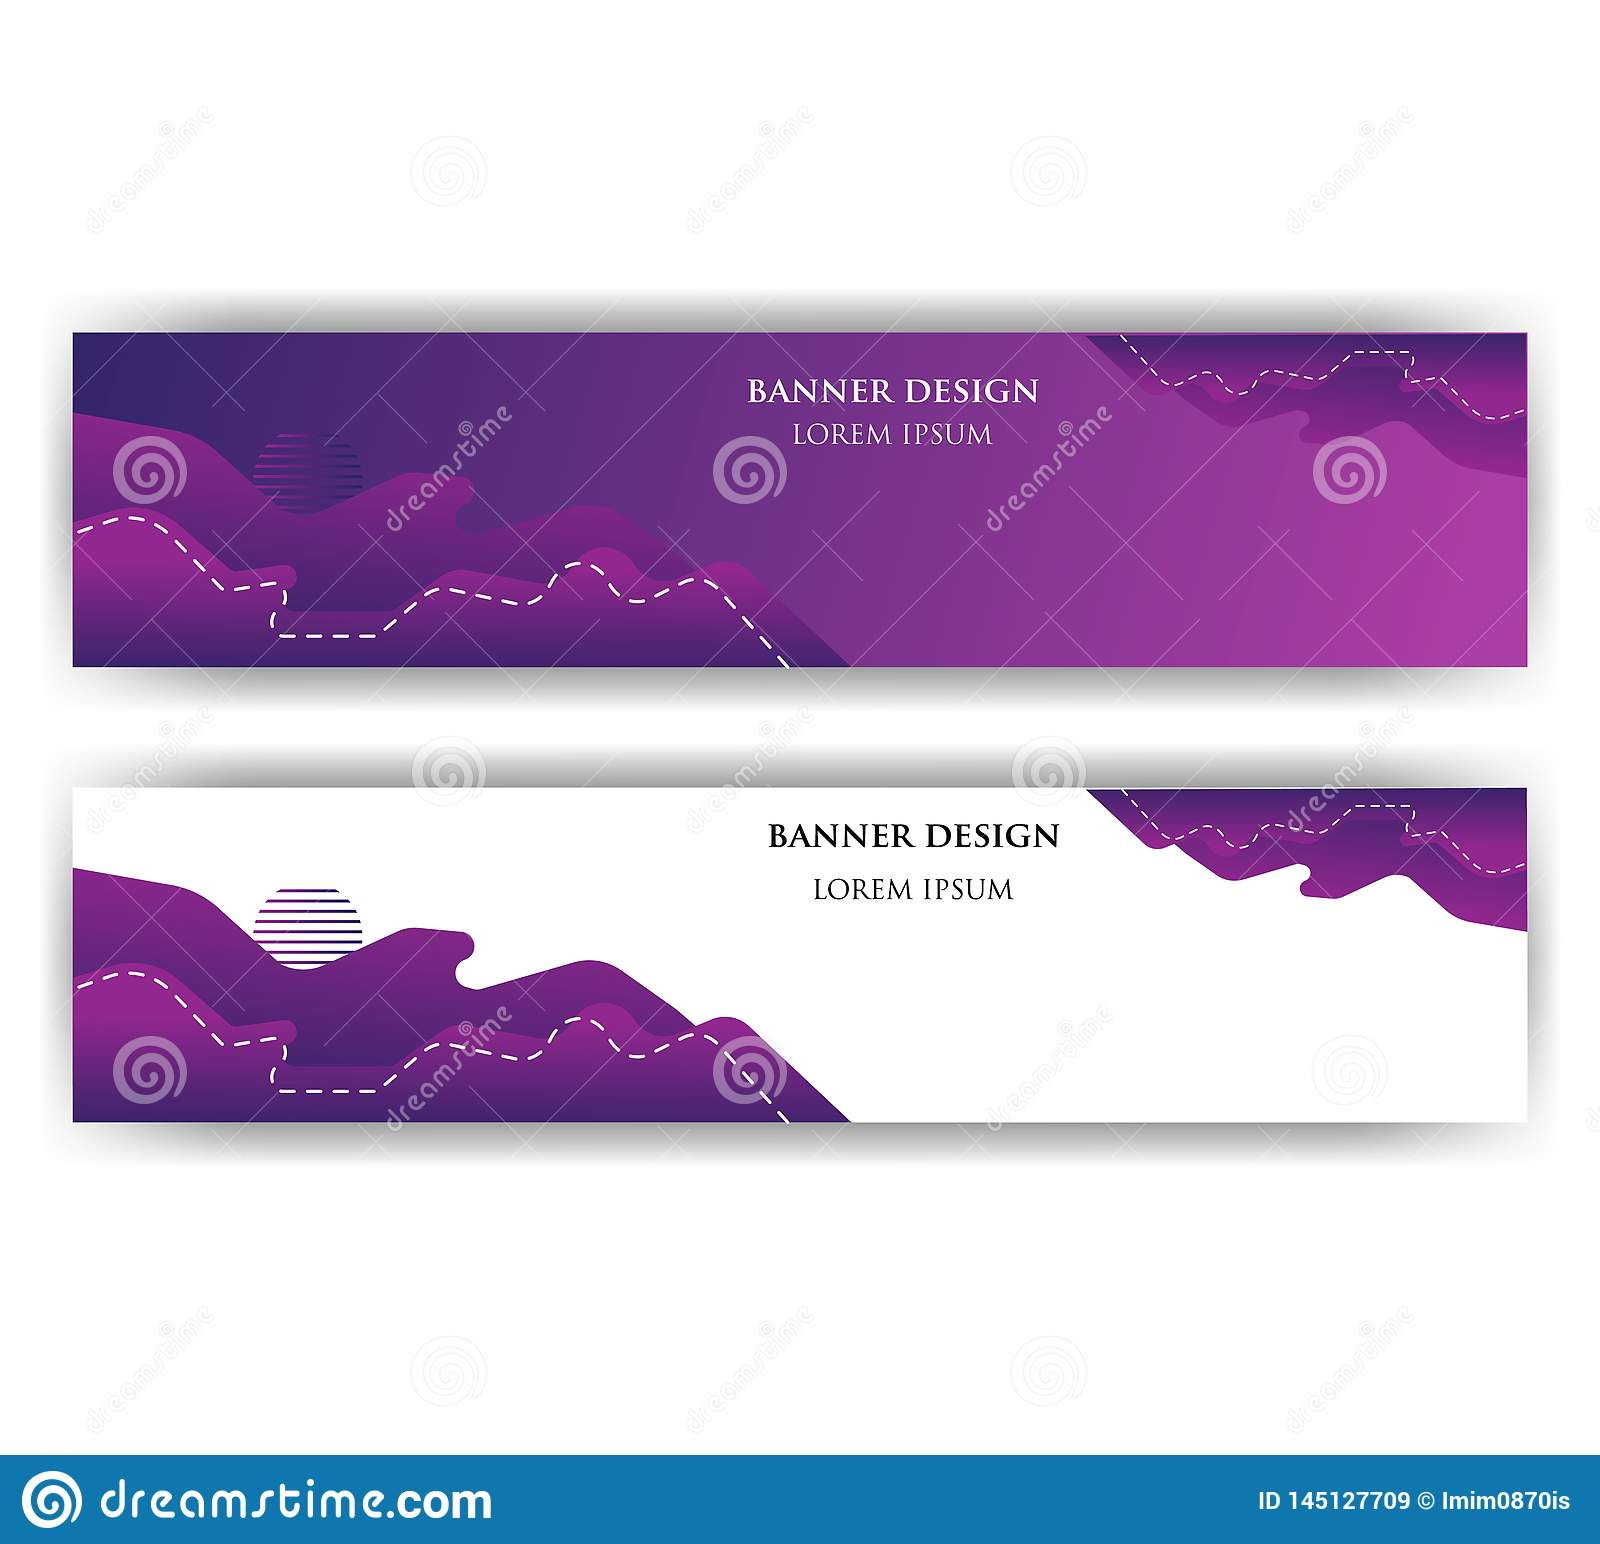 Banner with abstract design. The image can be used to design a banne